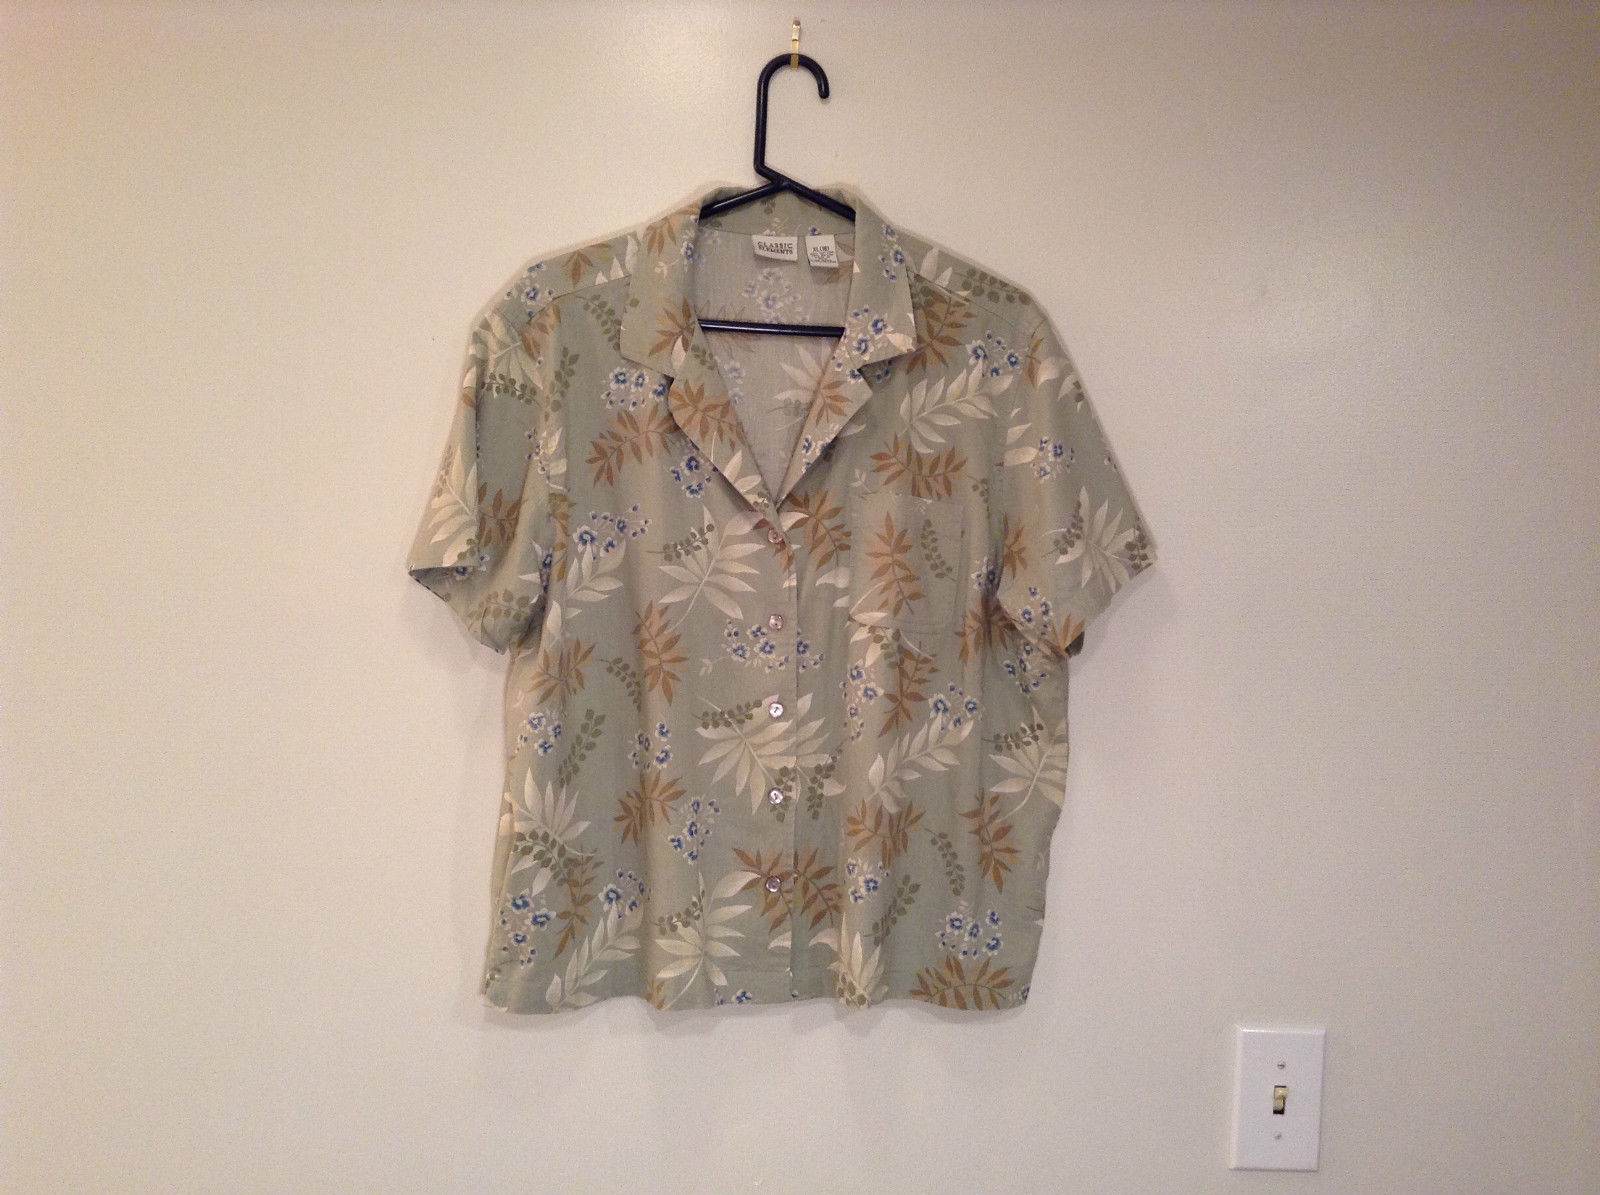 Olive Green with Flowers and Leaf Pattern Classic Elements Shirt Size XL 18